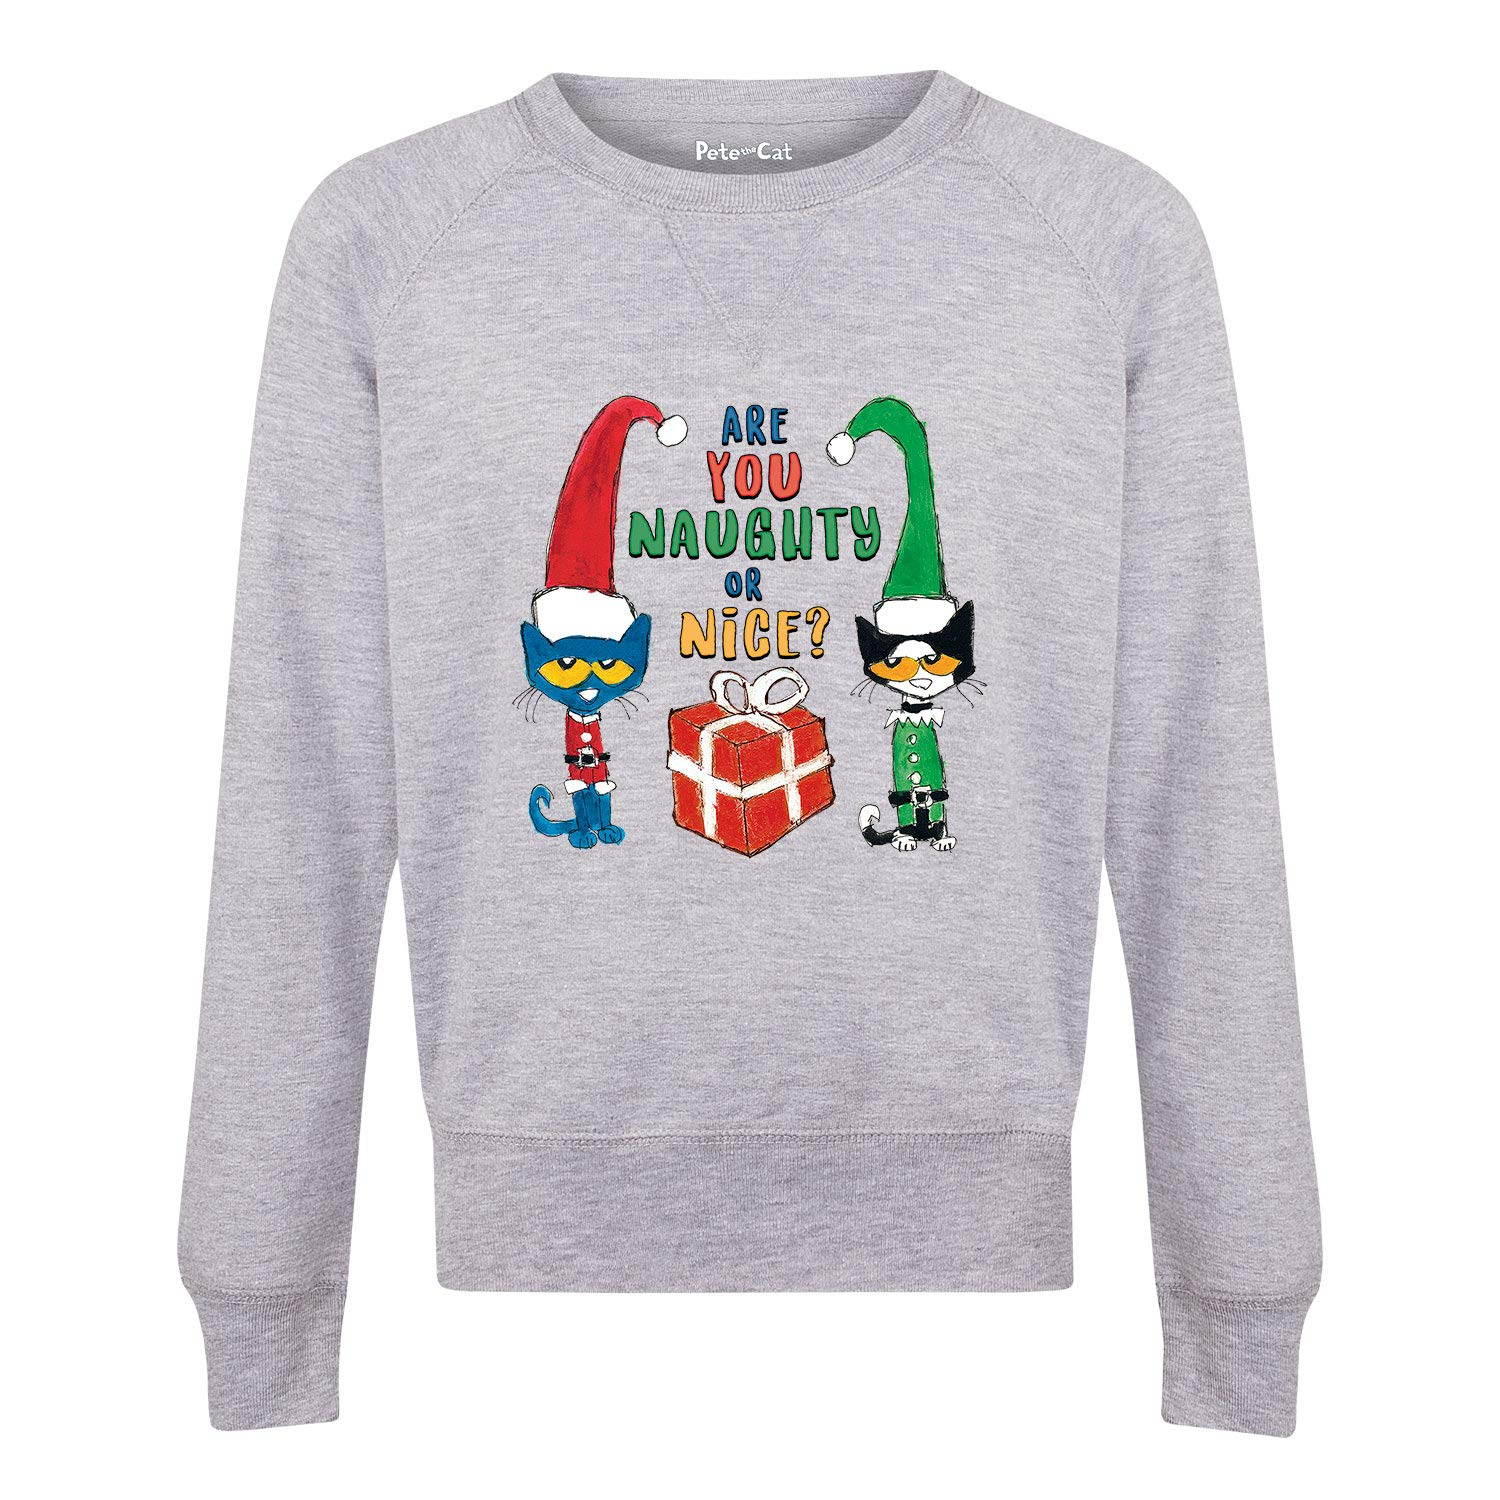 Pete the Cat PTC Naughty Or Nice Youth Girls Slouchy Ft